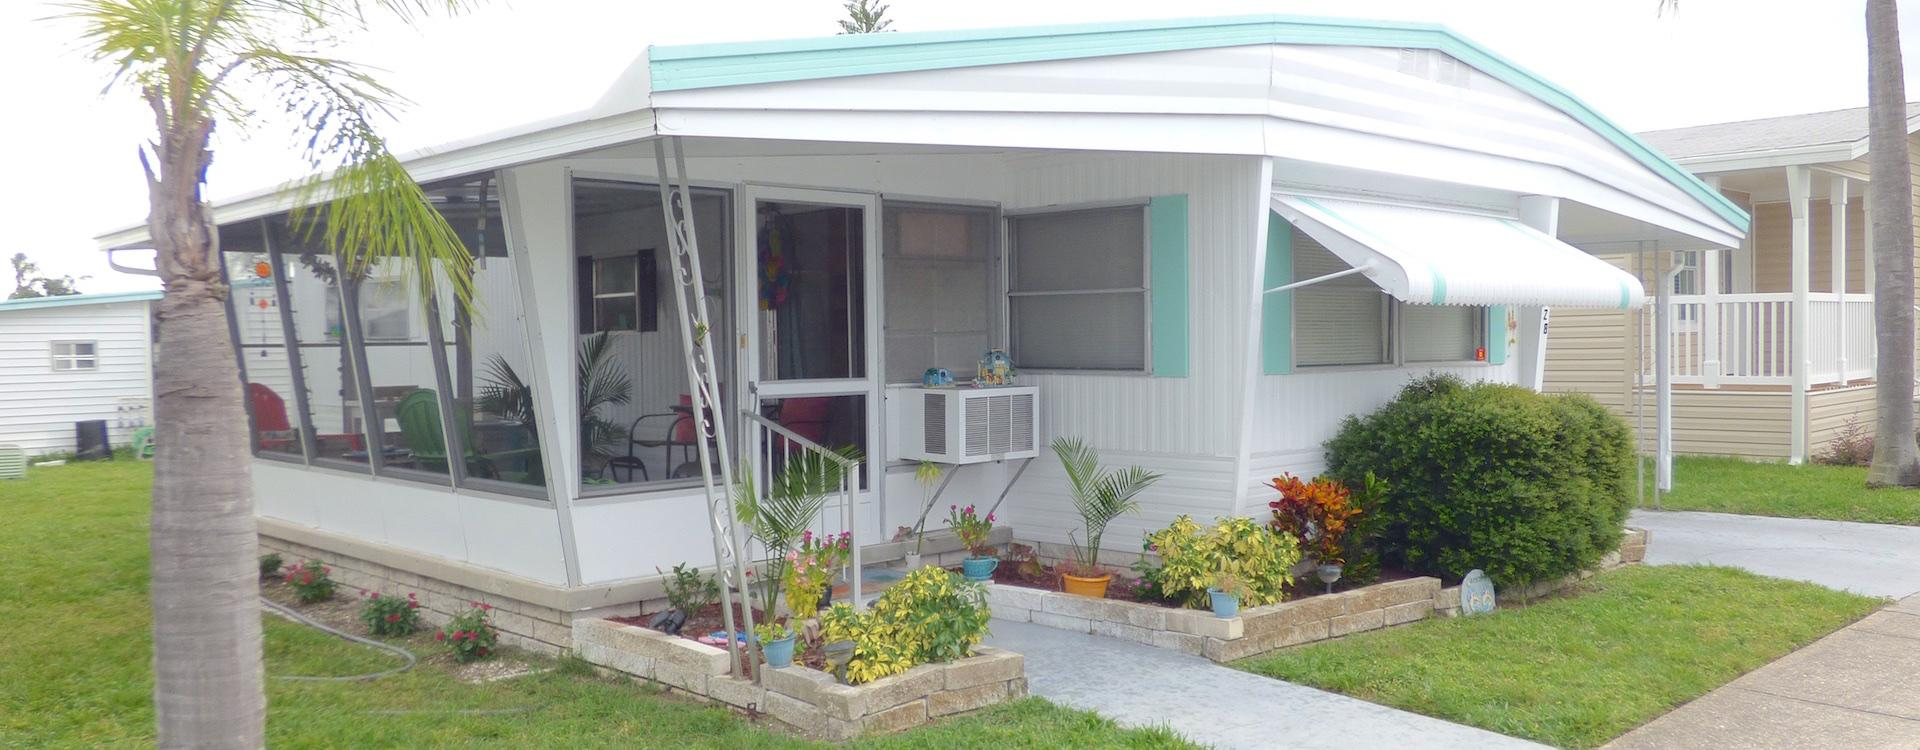 Used-Mobile-Home-For-Sale-201608-001-Wide-2 Mobile Home Parks Clearwater Fl on rent clearwater fl, city of clearwater fl, mobile home parks seminole florida, mobile home in clearwater florida, queen fleet deep sea fishing clearwater fl, restaurants clearwater fl, mobile home 55 plus communities, apartments clearwater fl, mobile home parks bellingham wa, mobile home parks tampa florida area, mobile home park tampa fl, retirement communities clearwater fl, timeshares clearwater fl, churches clearwater fl, mobile home communities florida, clubs clearwater fl, mobile home parks largo florida, coachman park clearwater fl, mobile homes florida keys fl, home builders clearwater fl,